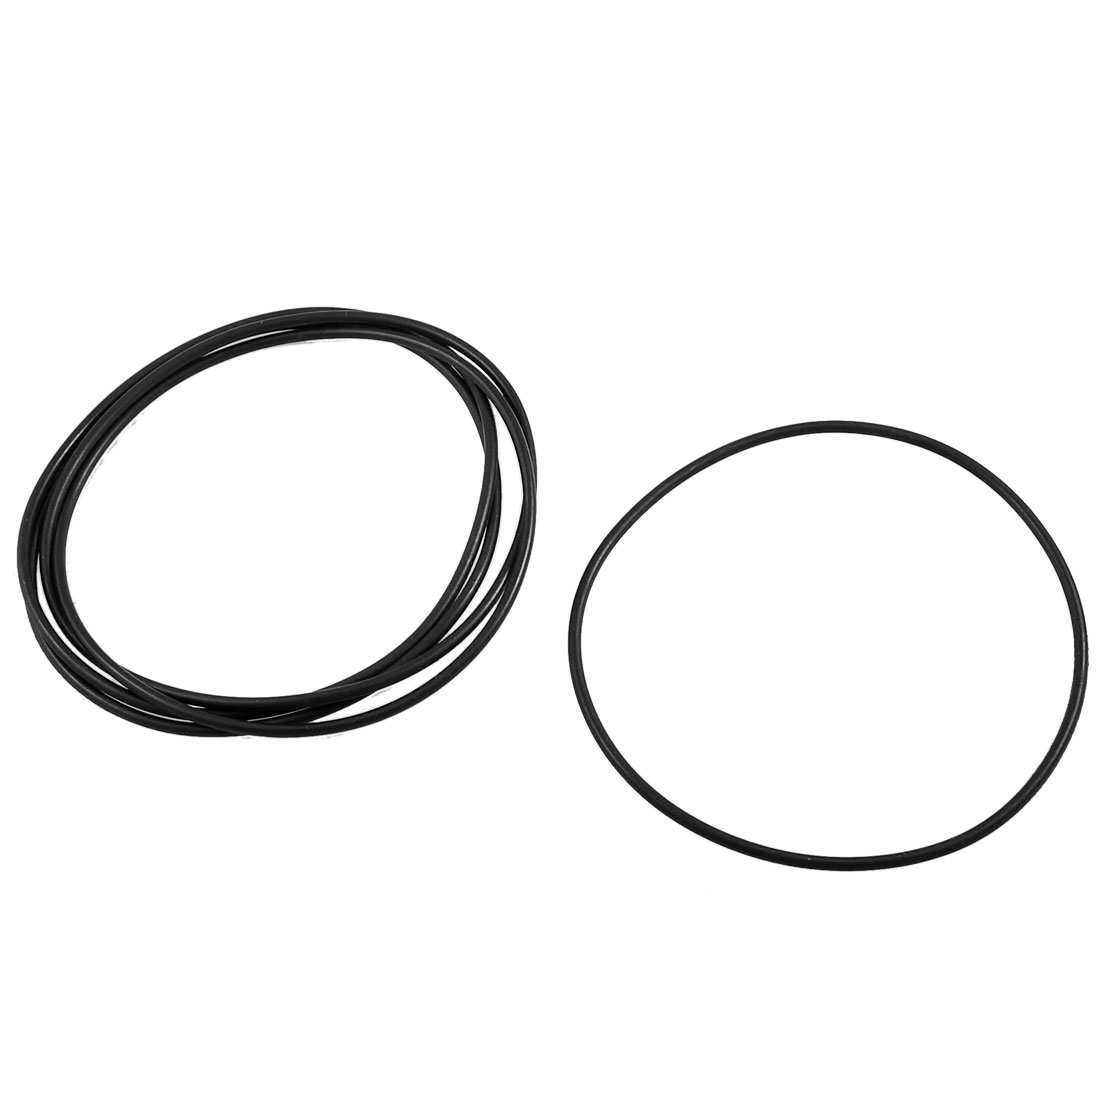 5 Pcs 110mm x 104mm x 3.1mm Industrial Rubber O Ring Oil Seal Gaskets Black